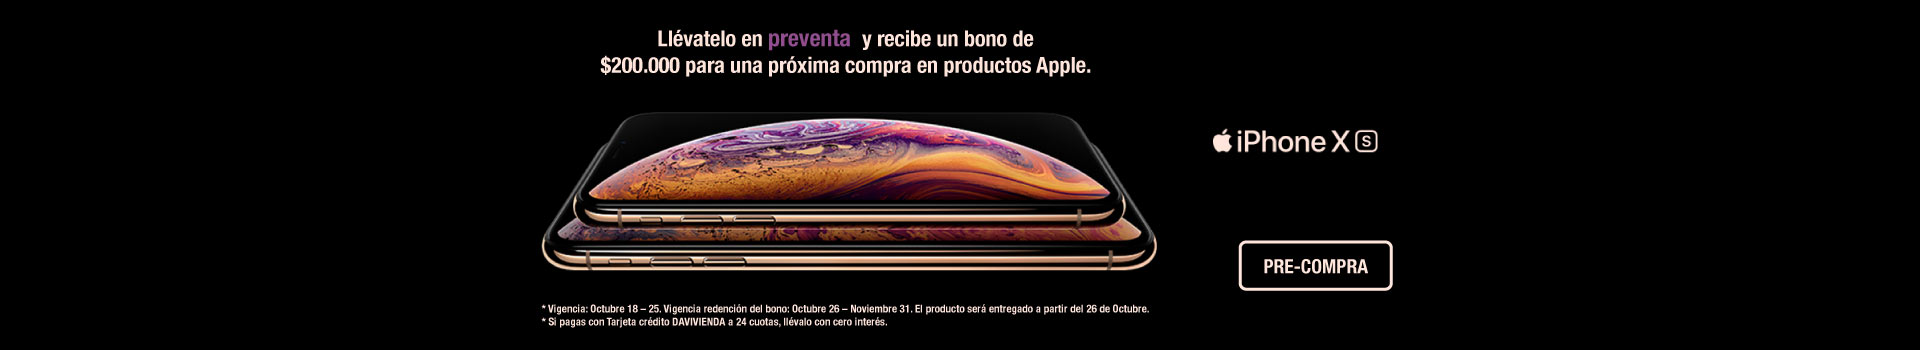 AK-KT-categoria-preventa-iphoneXS